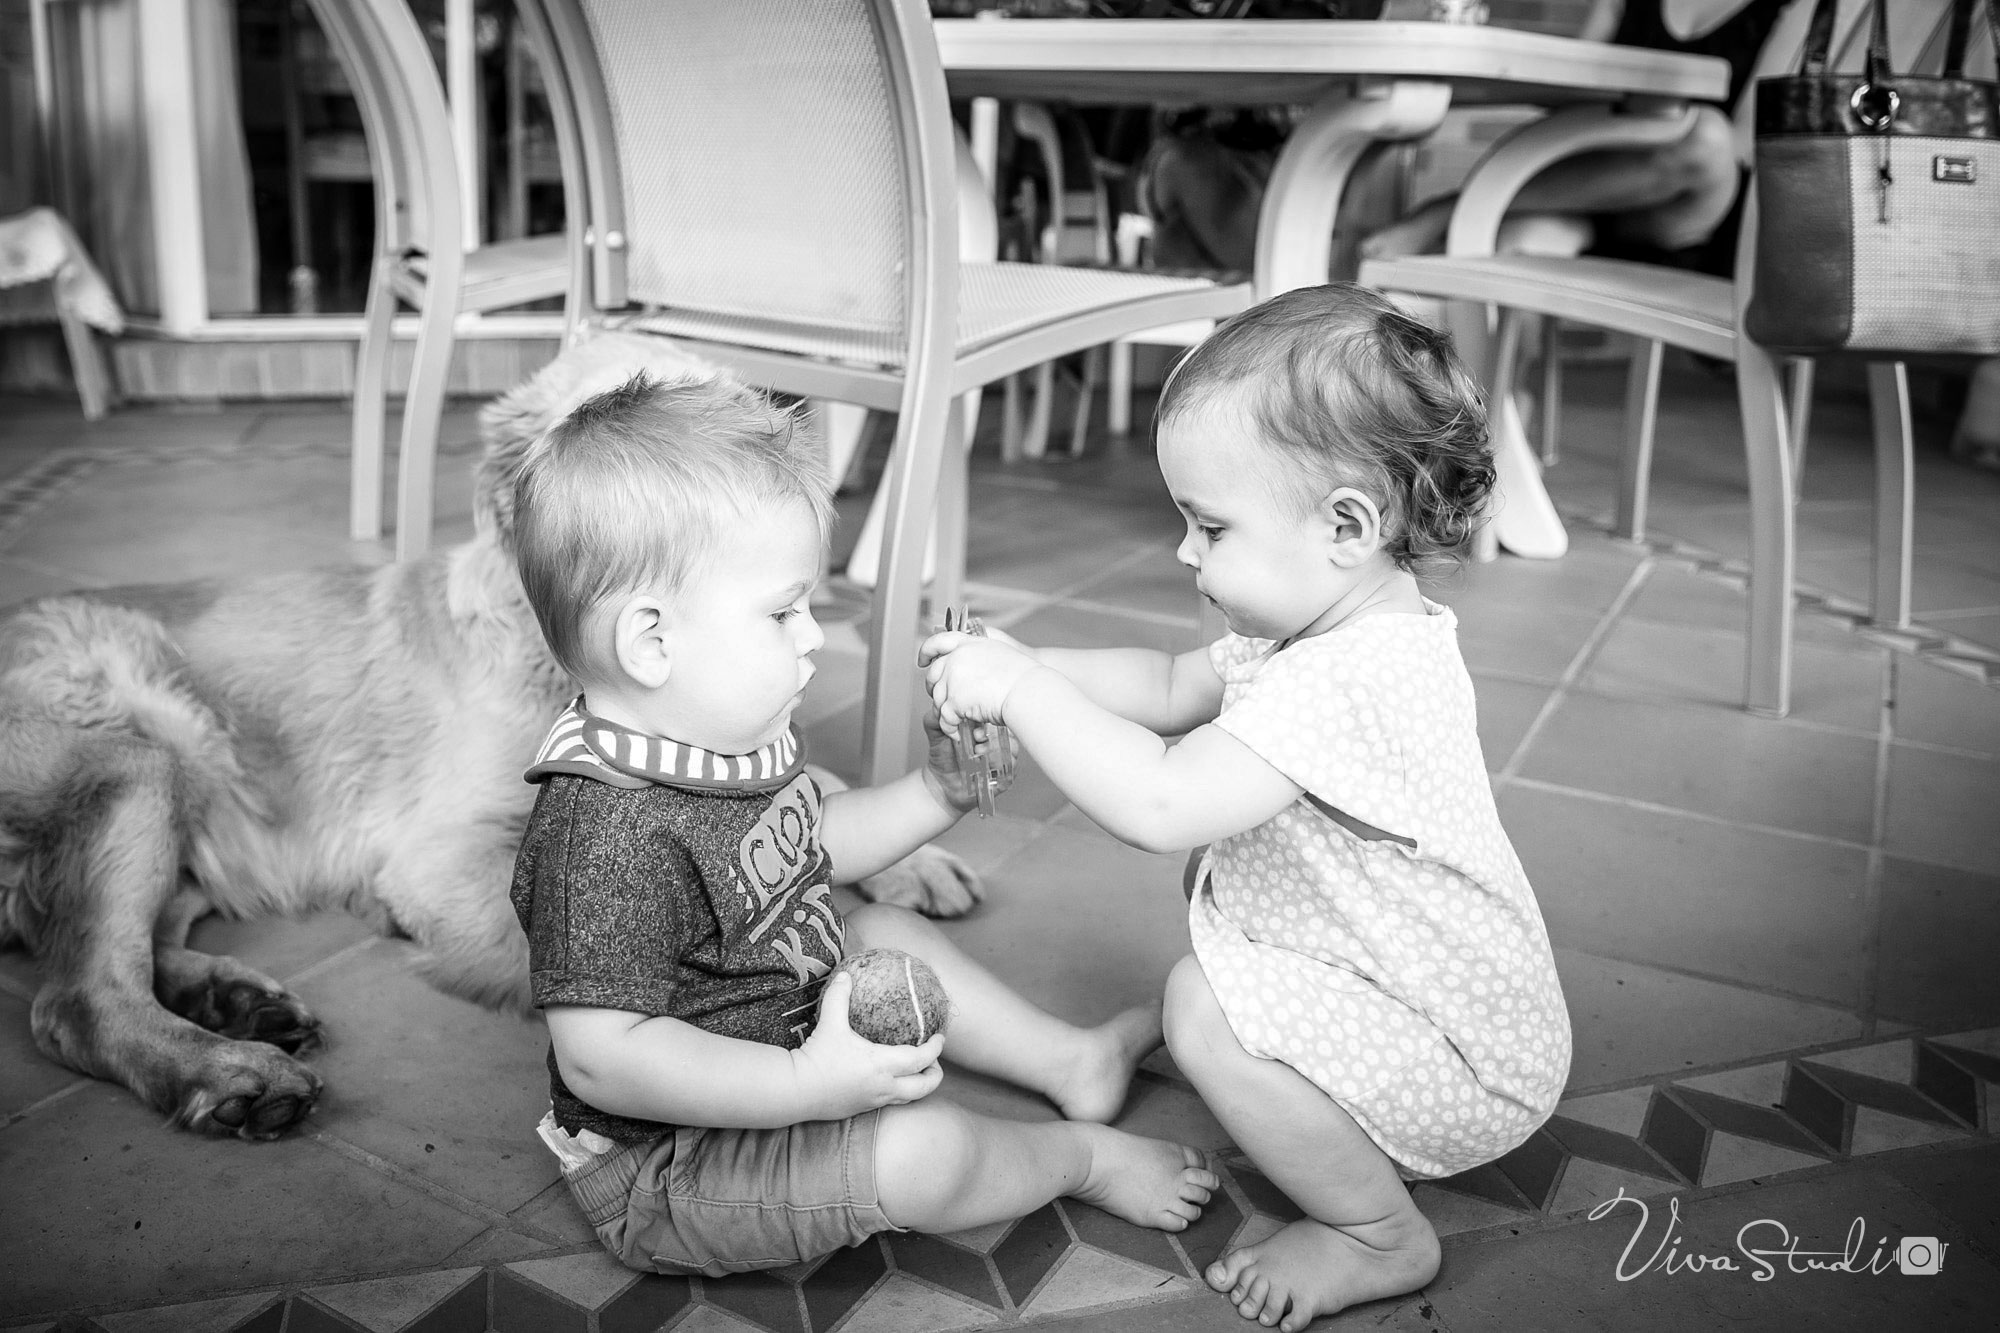 VivaStudio_Design_Photograpphy_Brisbane_Baby_Sidney_1st_Birthday_Party0020-bw